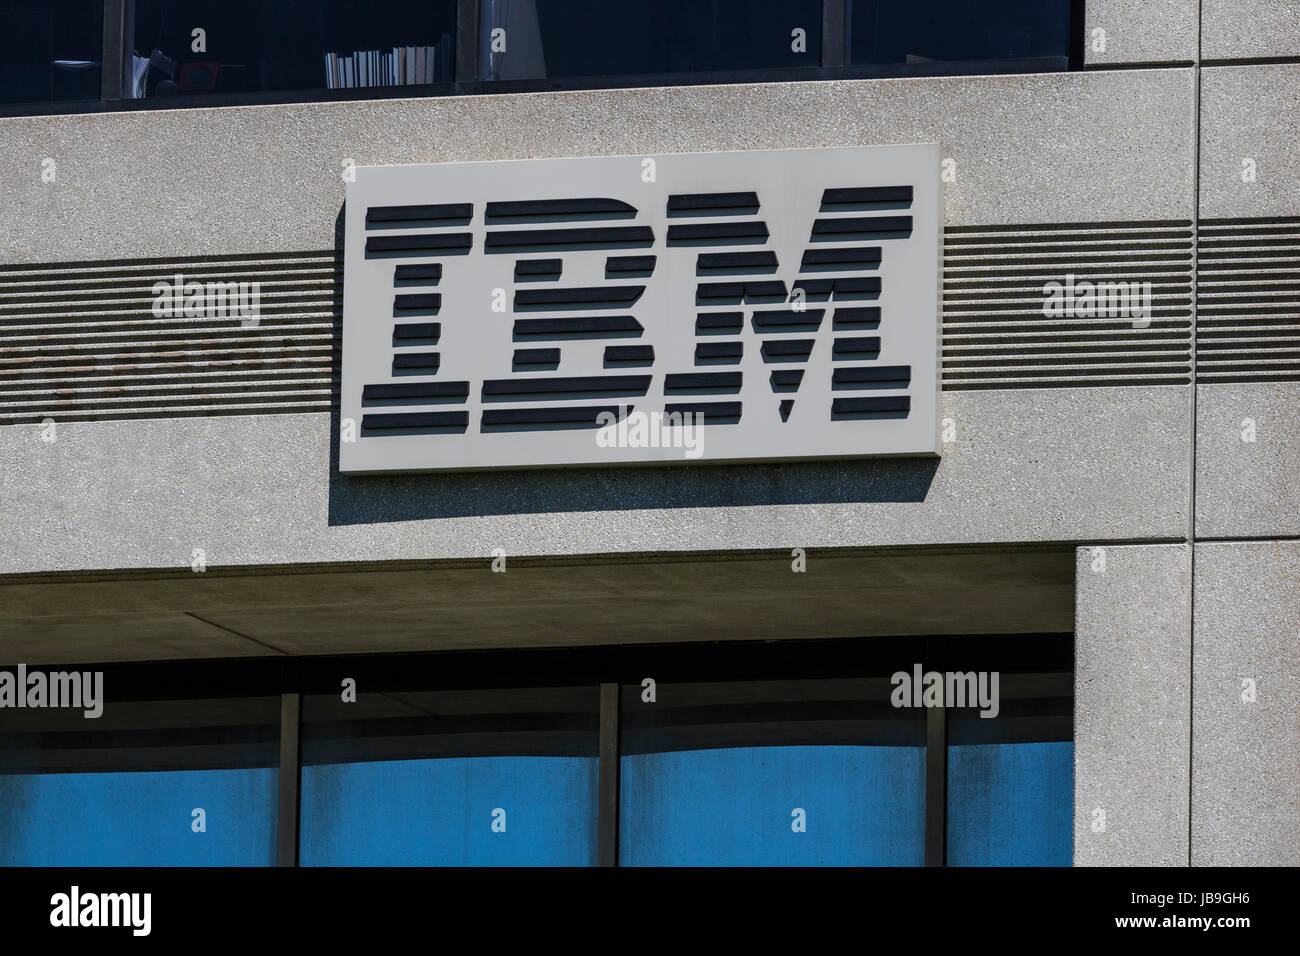 Indianapolis - Circa June 2017: IBM signage and logo. International Business Machines pioneered the PC, ATM and - Stock Image